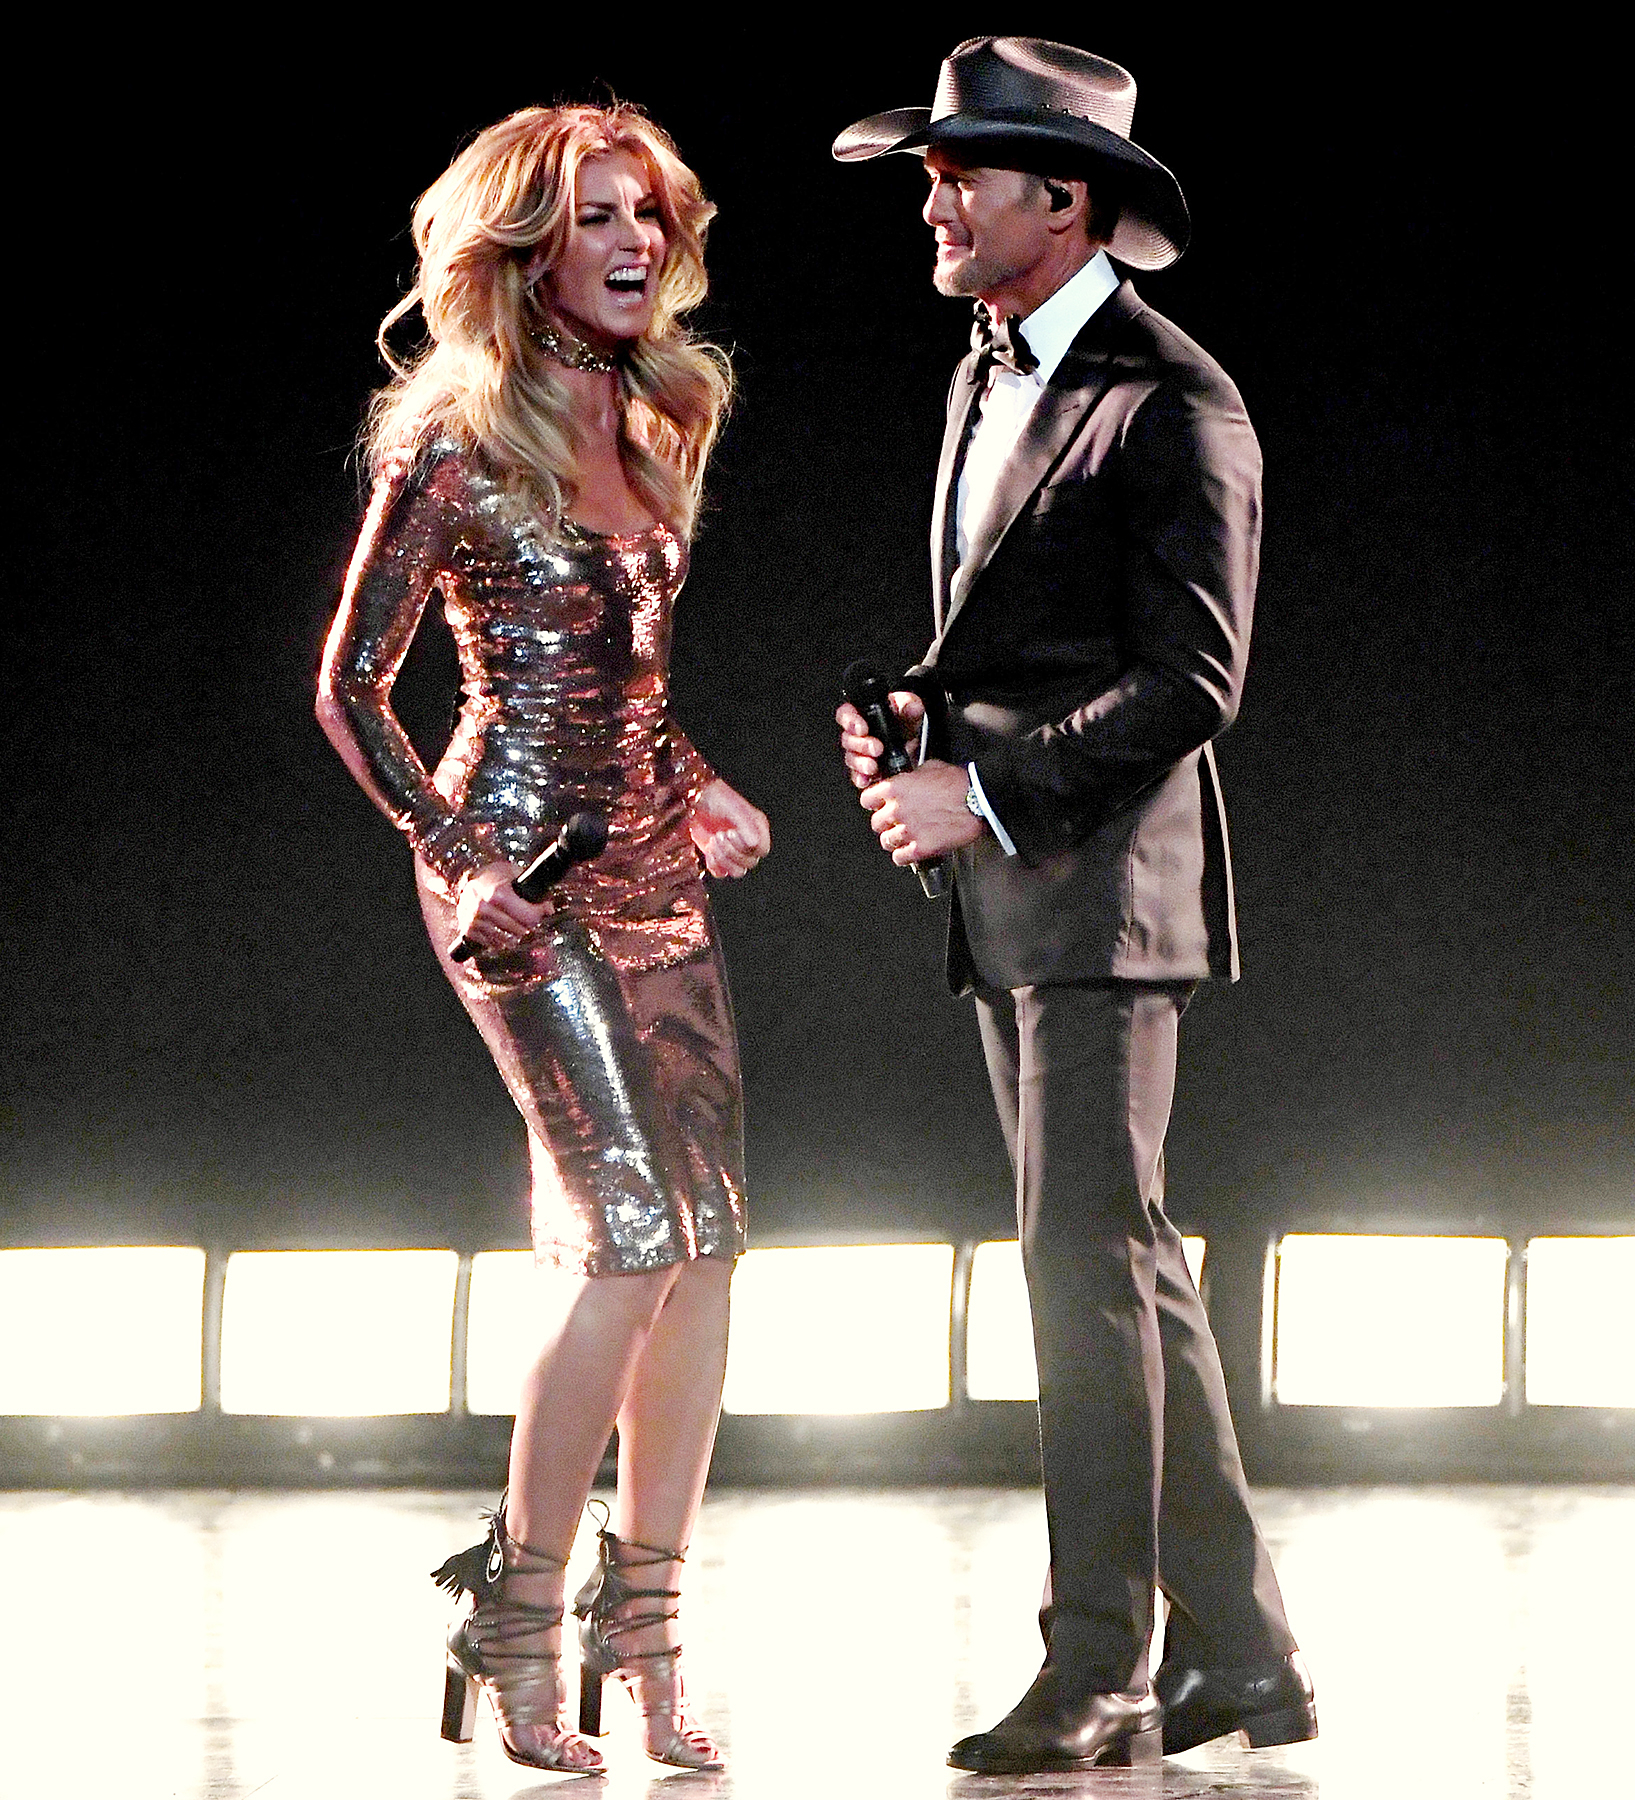 Faith Hill Jumps Into Tim McGraw's Arms After ACM Awards